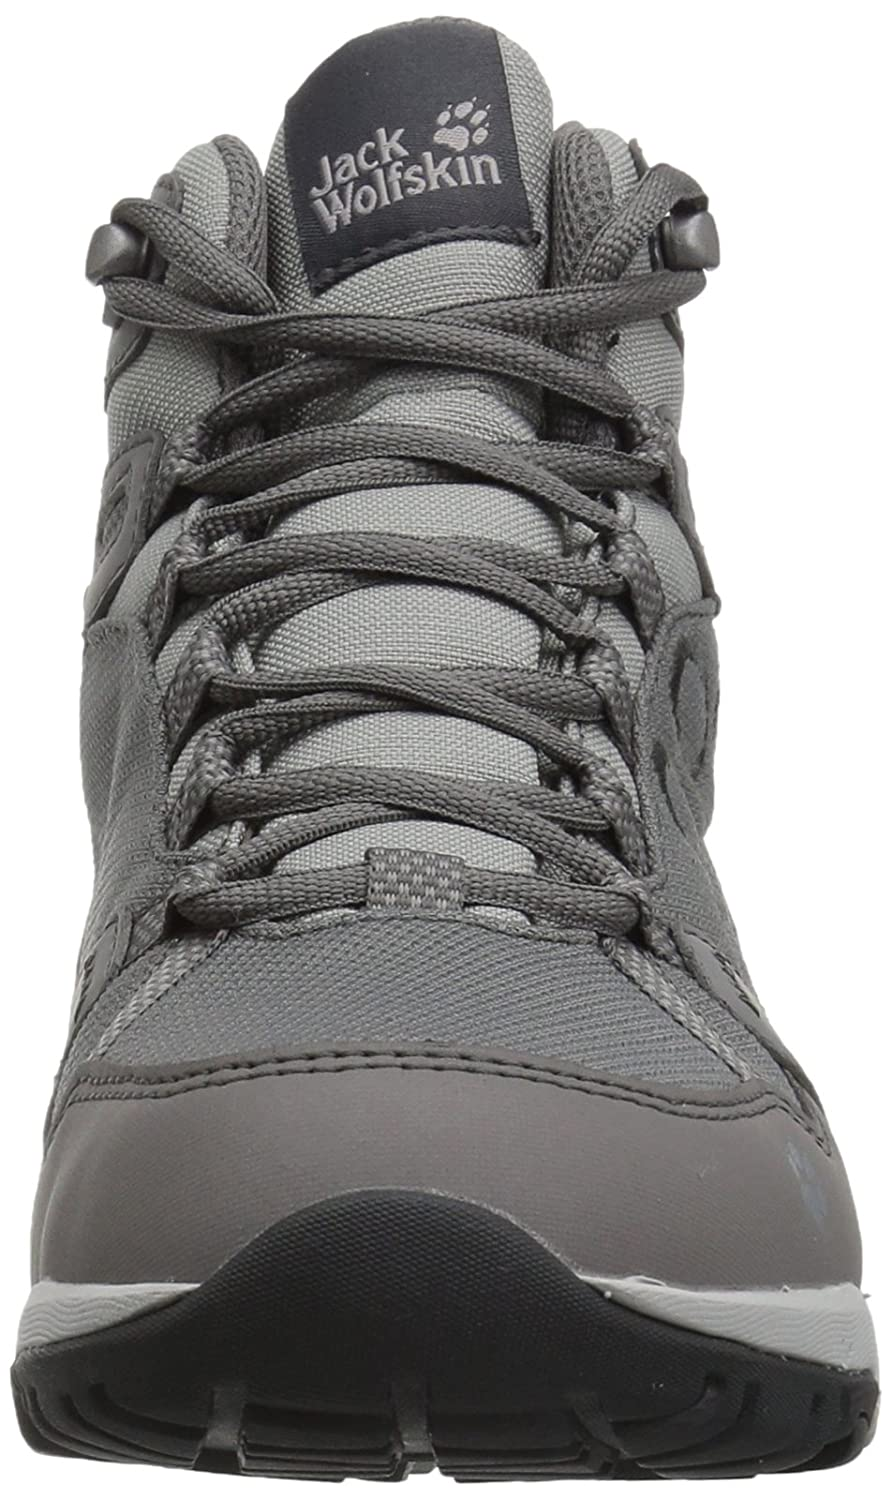 Jack Wolfskin Women's Activate Texapore Mid W Hiking Boot D B073ZJGY1C US Women's 6.5 D Boot US|Tarmac Grey 2bb0bf